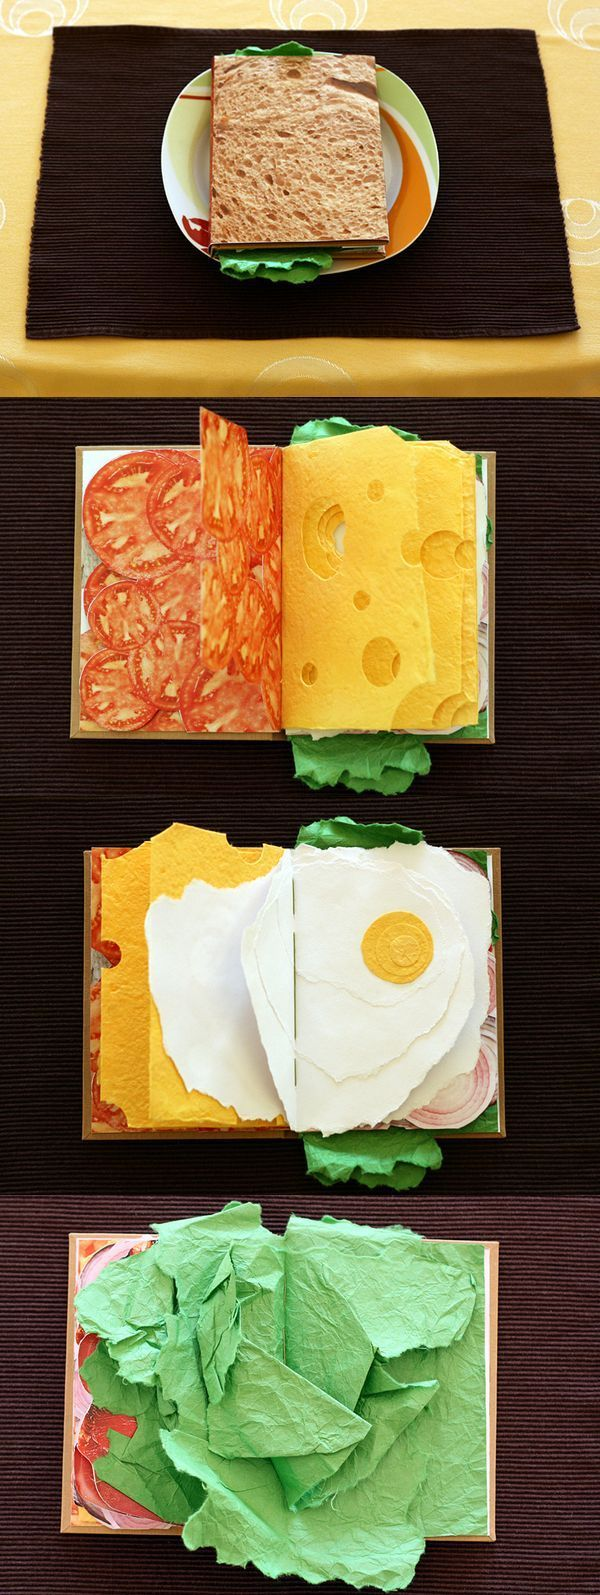 This book is an artists book created by pawel piotriwski. This sandwich book shows lots of different colours and textures to represent each piece of food. I think the colours make it seem more fun, and attract you to read it. This is a good format for representing food because it shows all the layers of the sandwich with each page, and the layers describe the item eg. the lettuce is looks quite realistic due to the way the paper is laid out.